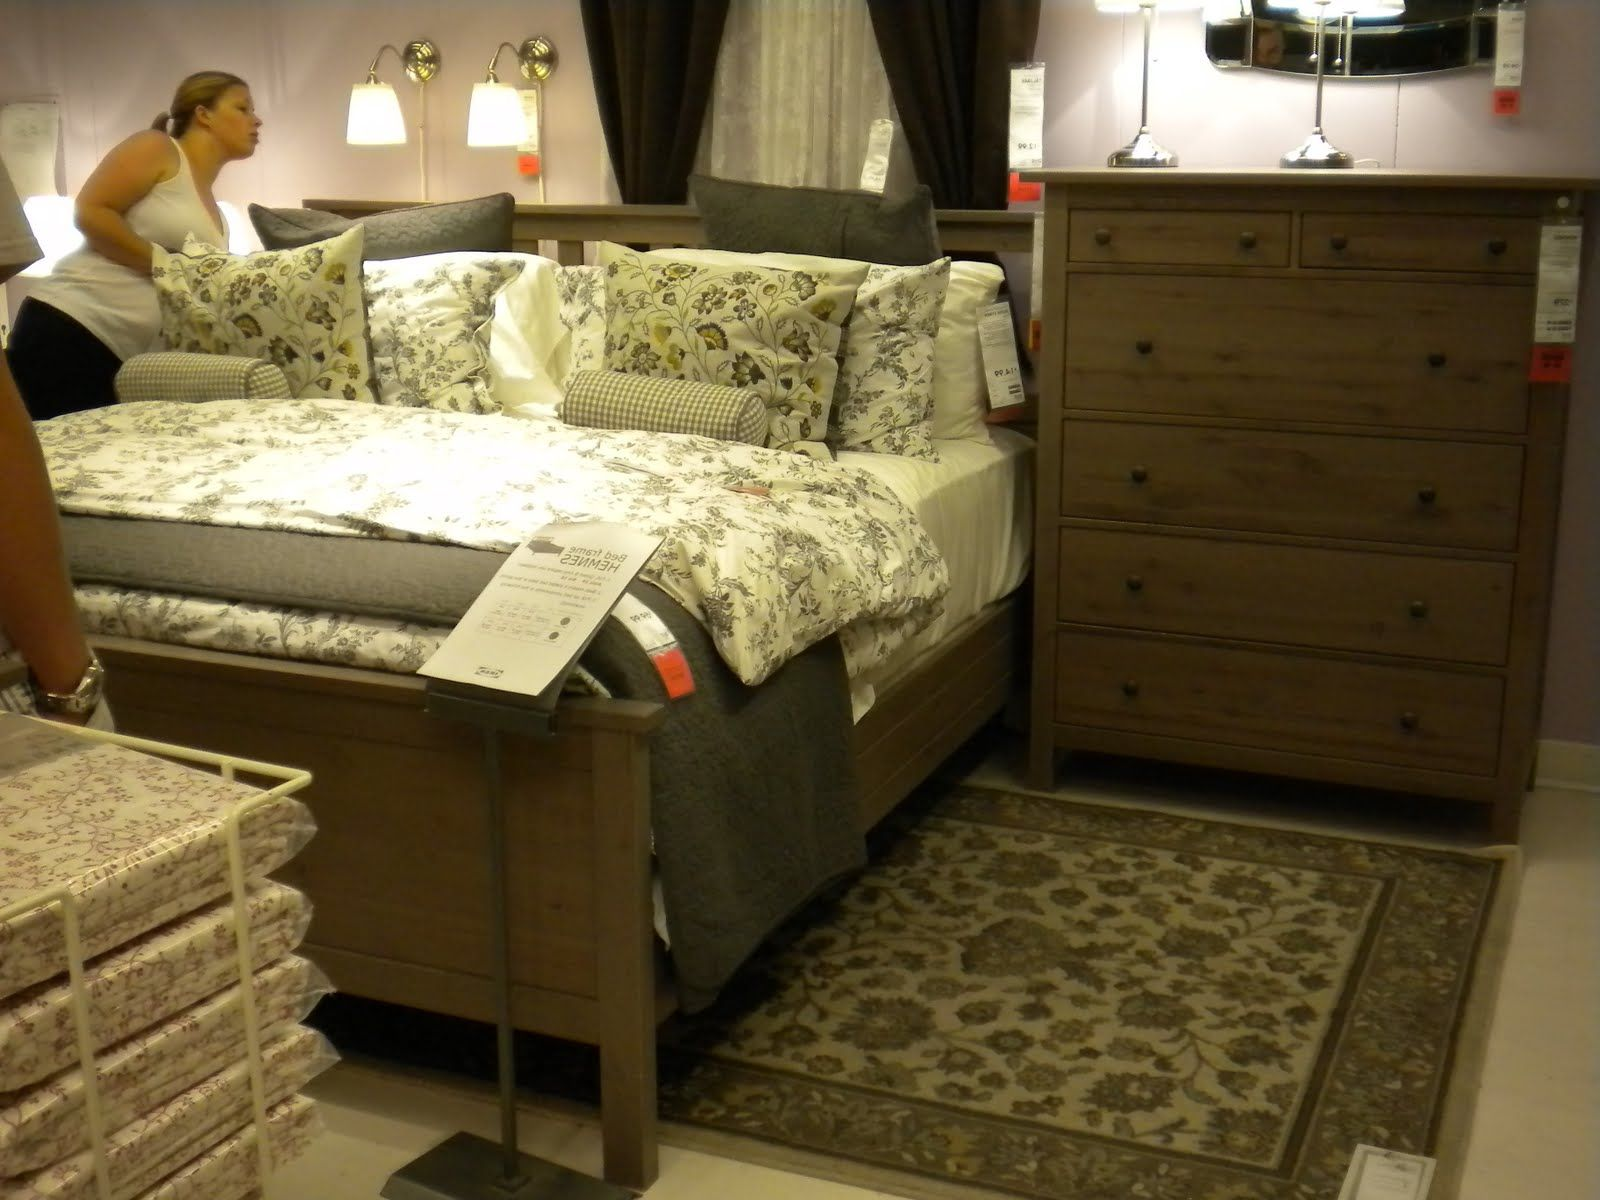 bedroom benches ikea. Ikea Hemnes Bedroom Ideas Bench Shia Labeoufbiz